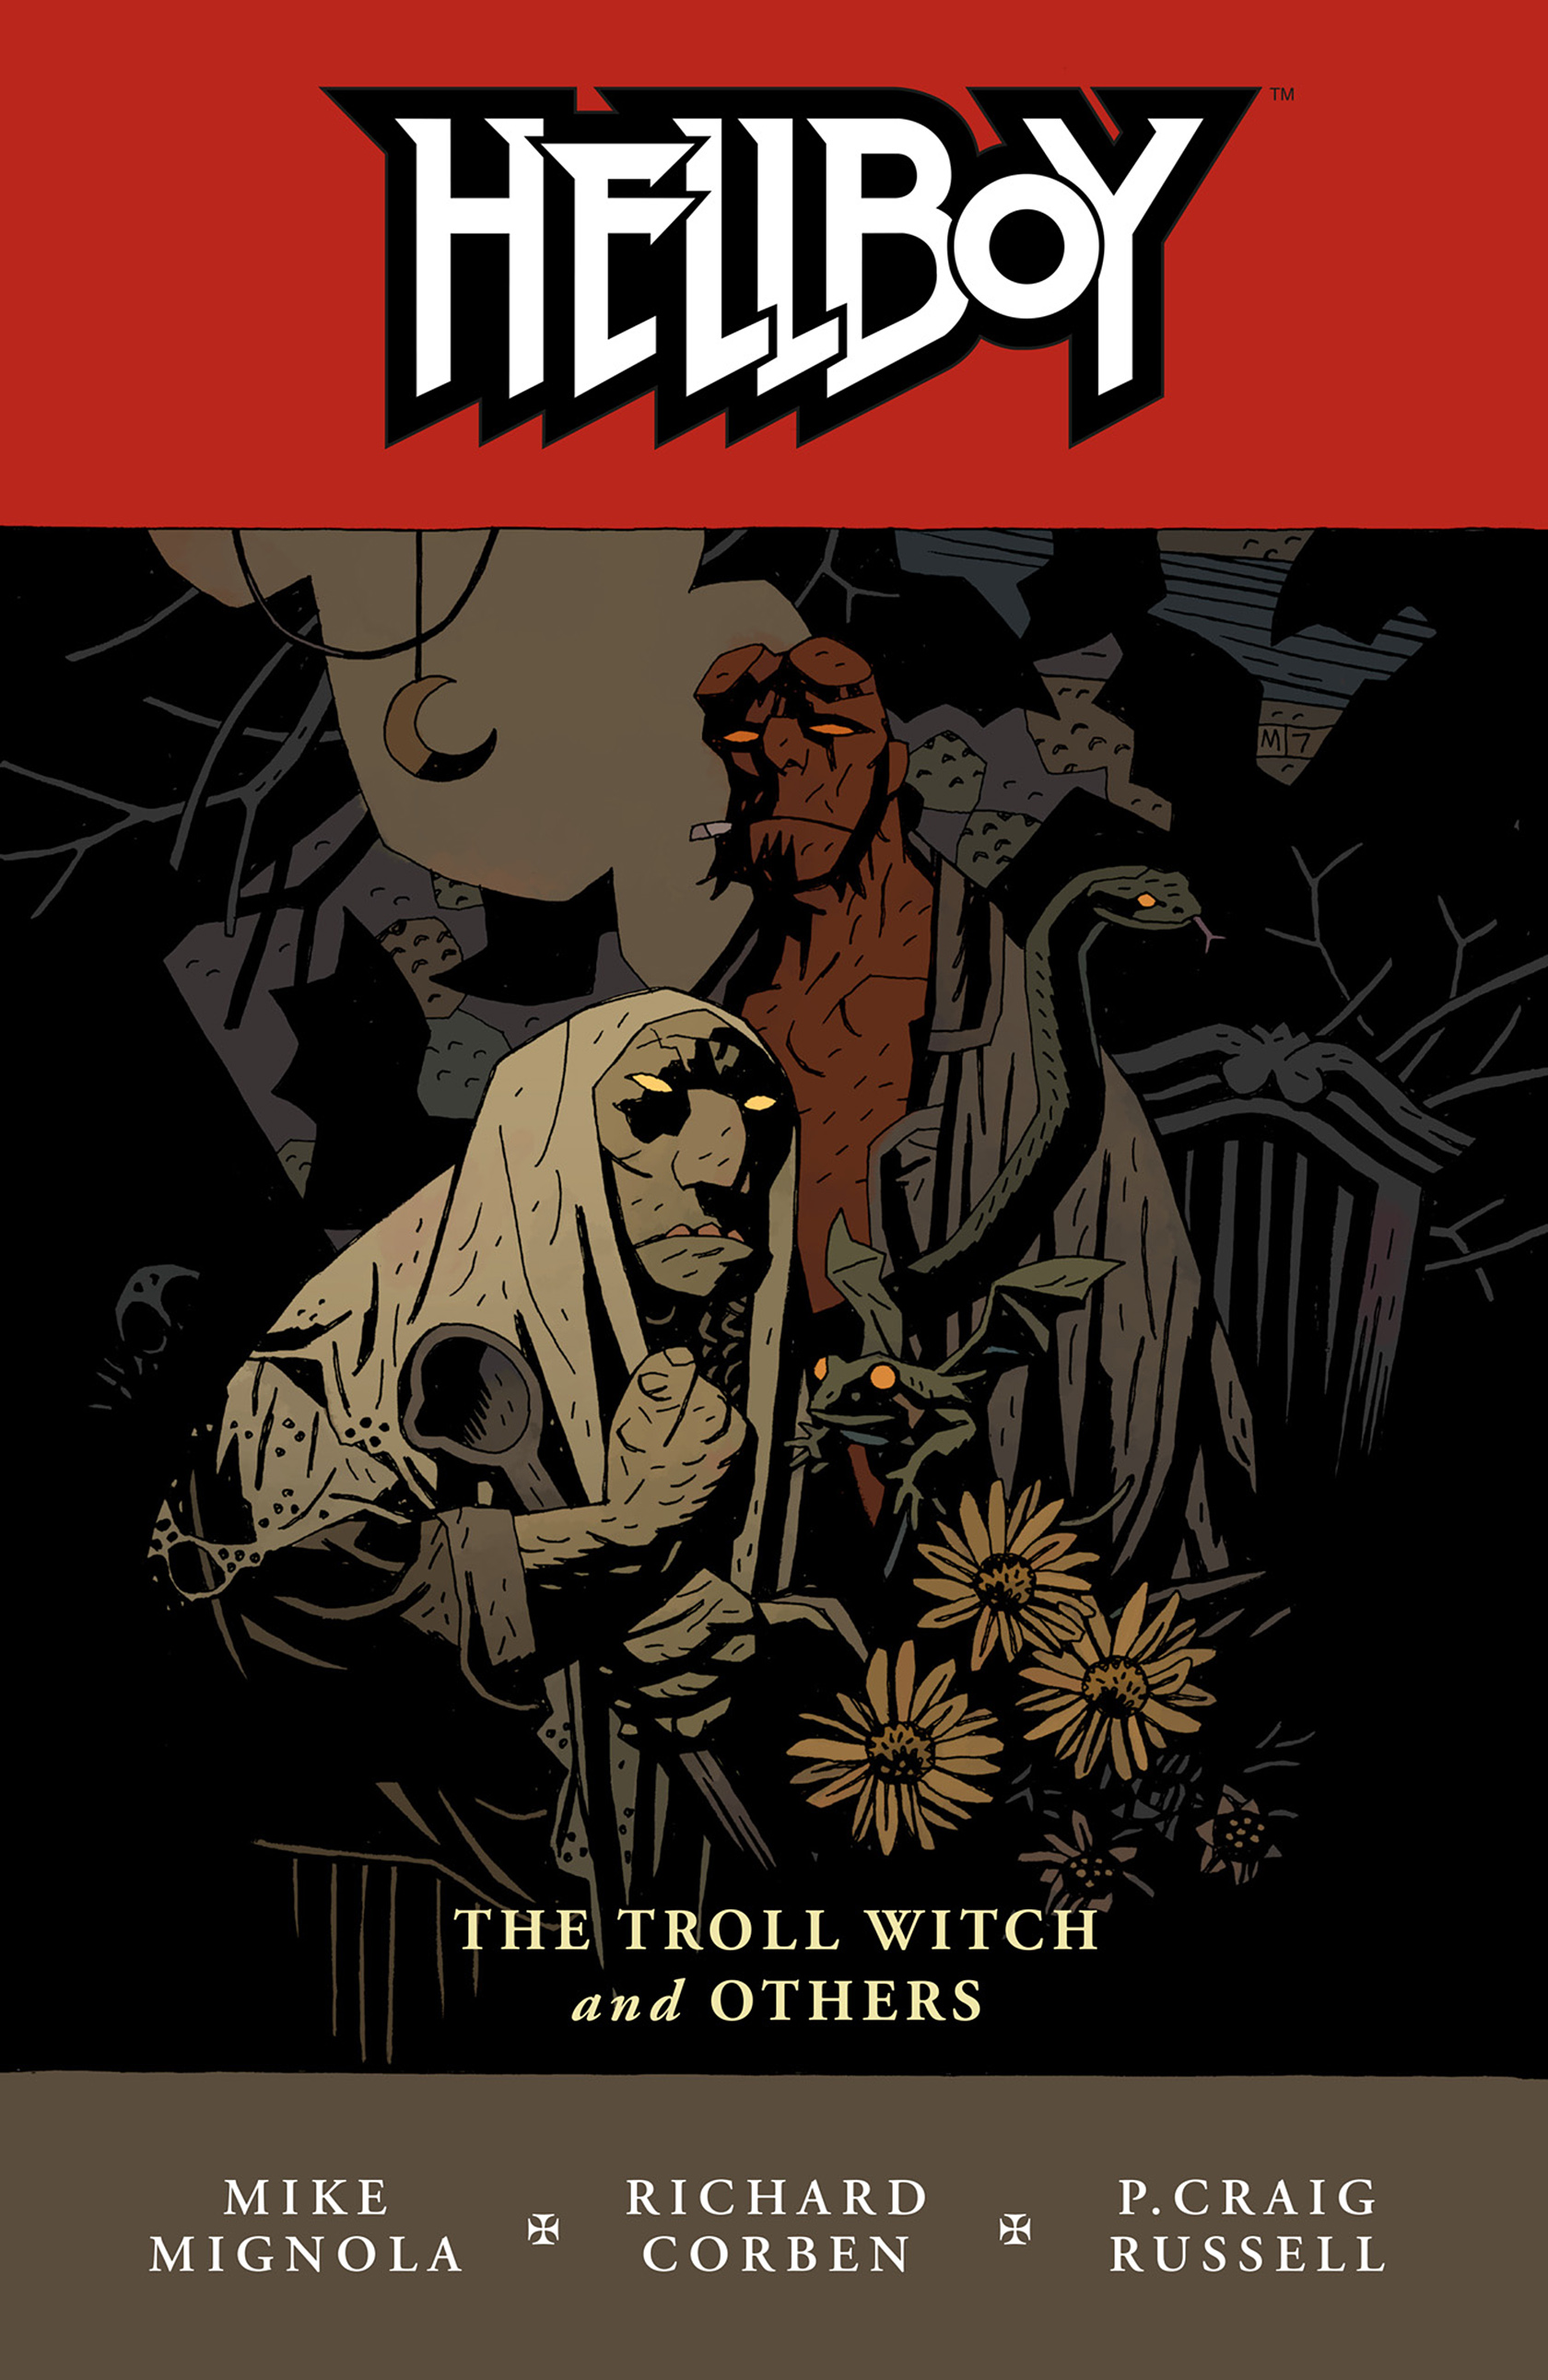 Read online Hellboy: The Troll Witch and Others comic -  Issue # TPB - 1